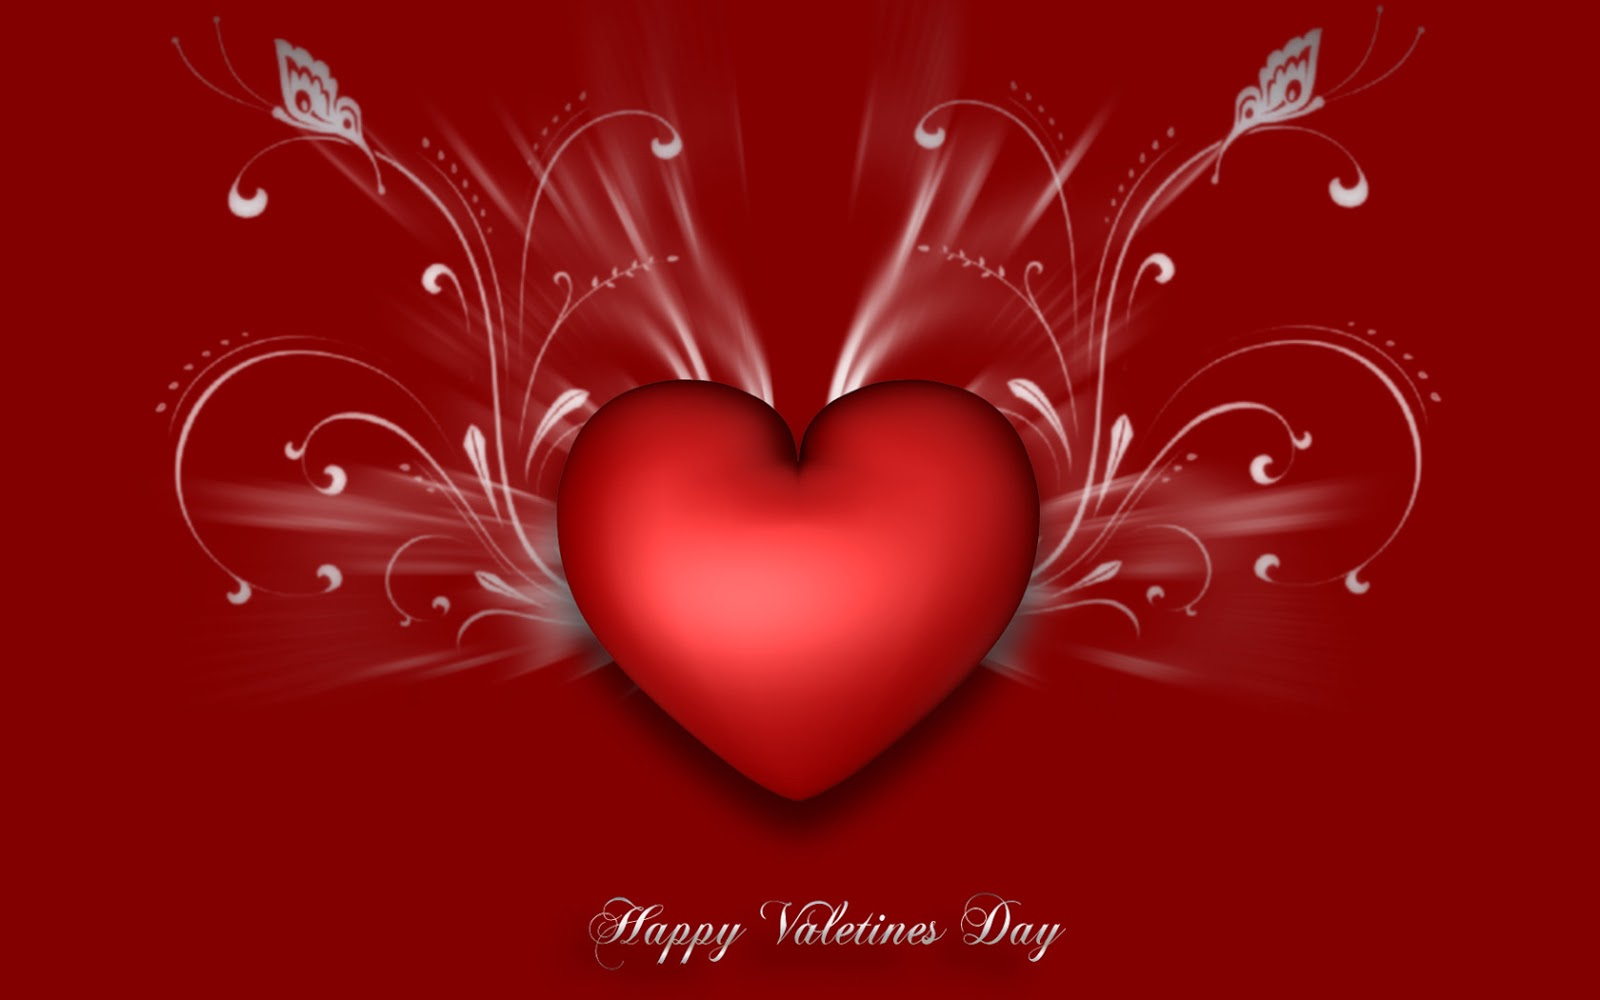 valentine's day funny wallpaper 2016- Funny Pictures images